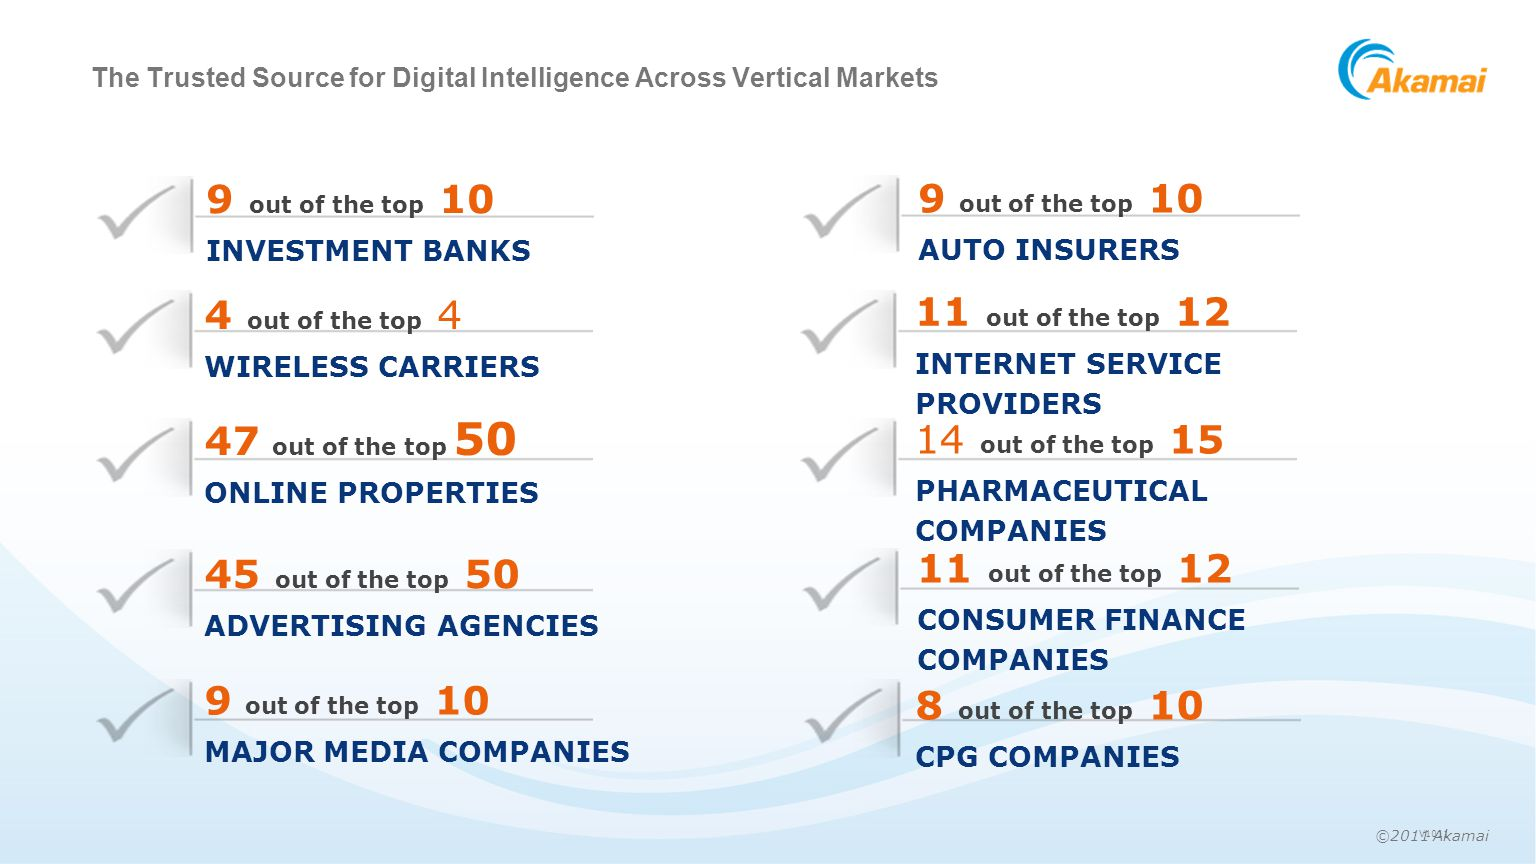 ©2011 Akamai The Trusted Source for Digital Intelligence Across Vertical Markets 47 out of the top 50 ONLINE PROPERTIES 45 out of the top 50 ADVERTISING AGENCIES 4 out of the top 4 WIRELESS CARRIERS 9 out of the top 10 INVESTMENT BANKS 9 out of the top 10 MAJOR MEDIA COMPANIES 14 out of the top 15 PHARMACEUTICAL COMPANIES 11 out of the top 12 CONSUMER FINANCE COMPANIES 11 out of the top 12 INTERNET SERVICE PROVIDERS 8 out of the top 10 CPG COMPANIES 9 out of the top 10 AUTO INSURERS V1011